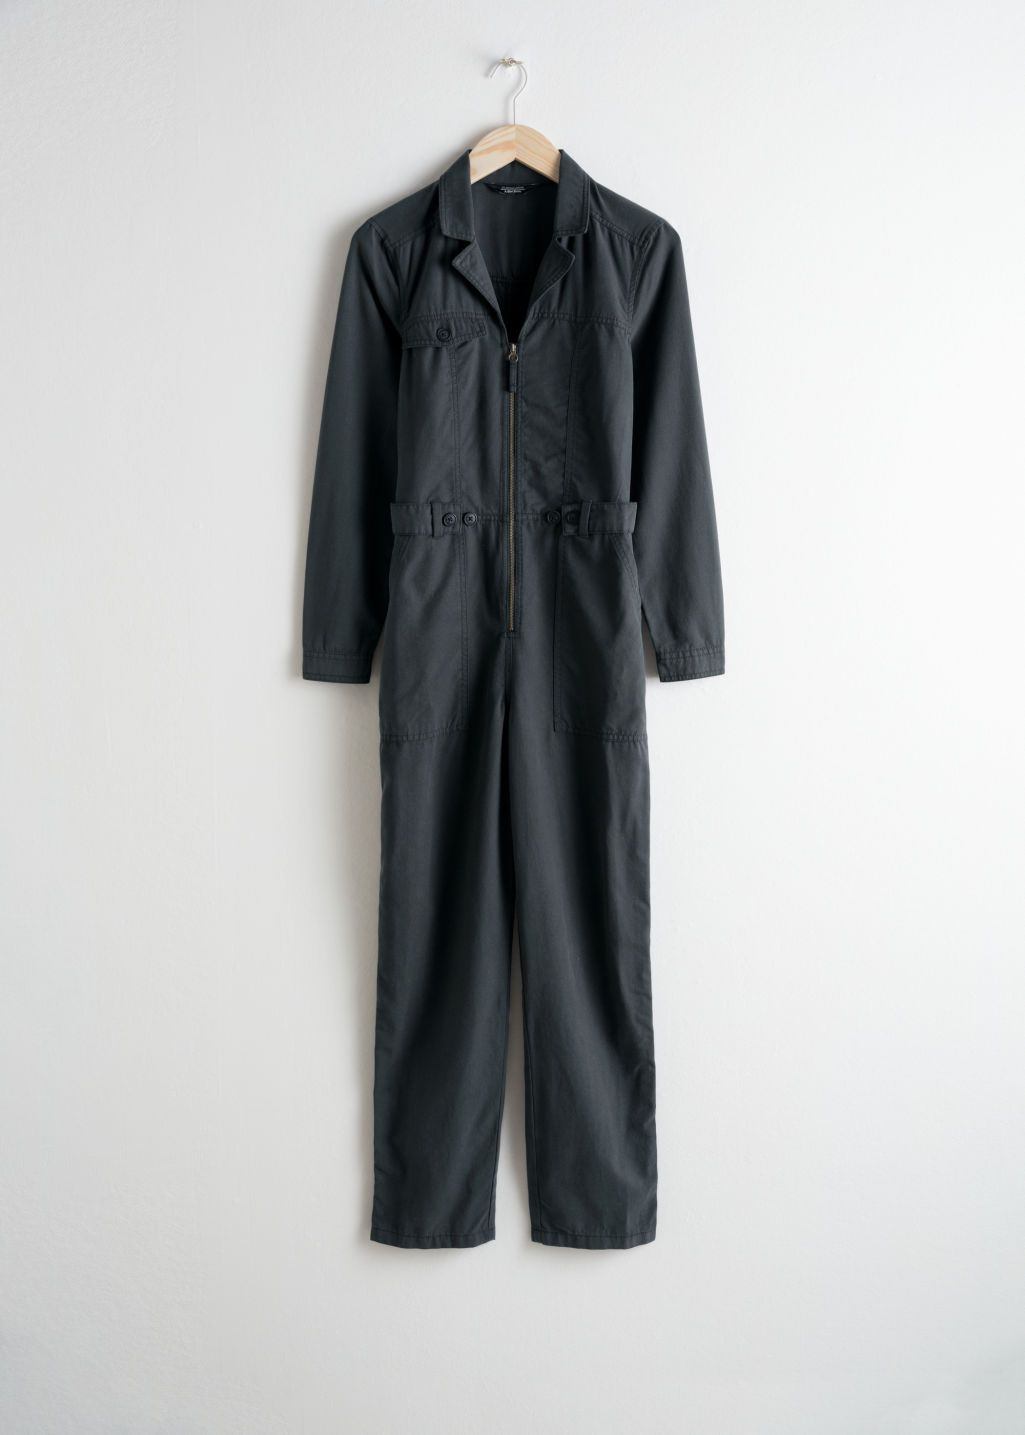 63a1b448e2e1 Other Stories utility workwear boiler suit in used black with front zipper  and deep pockets